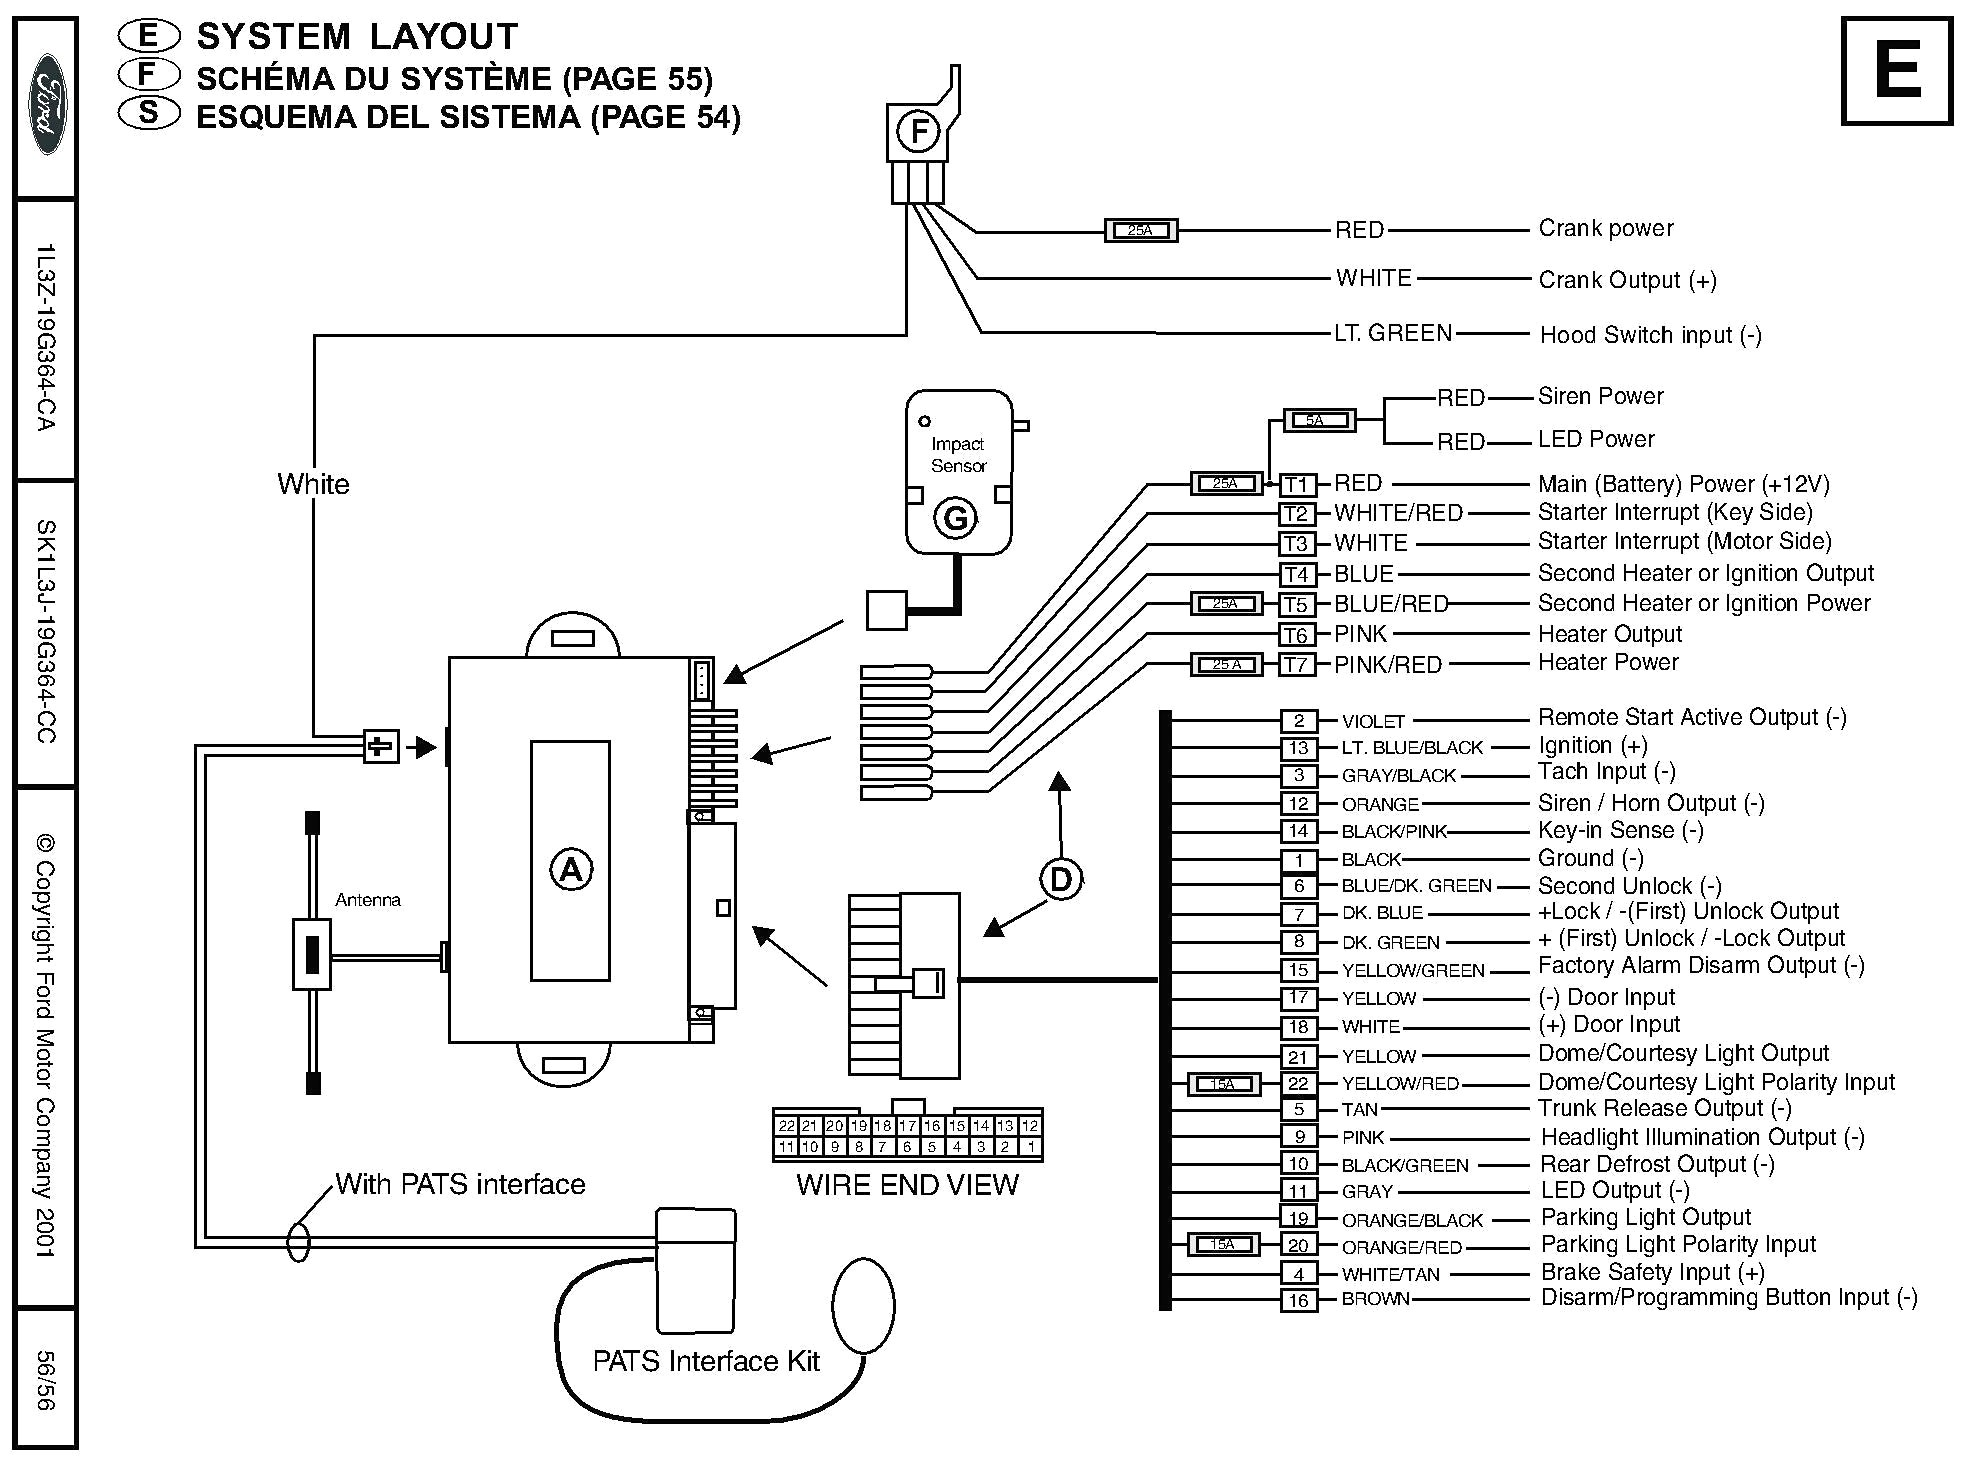 [WRG-7170] 88 Ford F700 Wiring Diagram